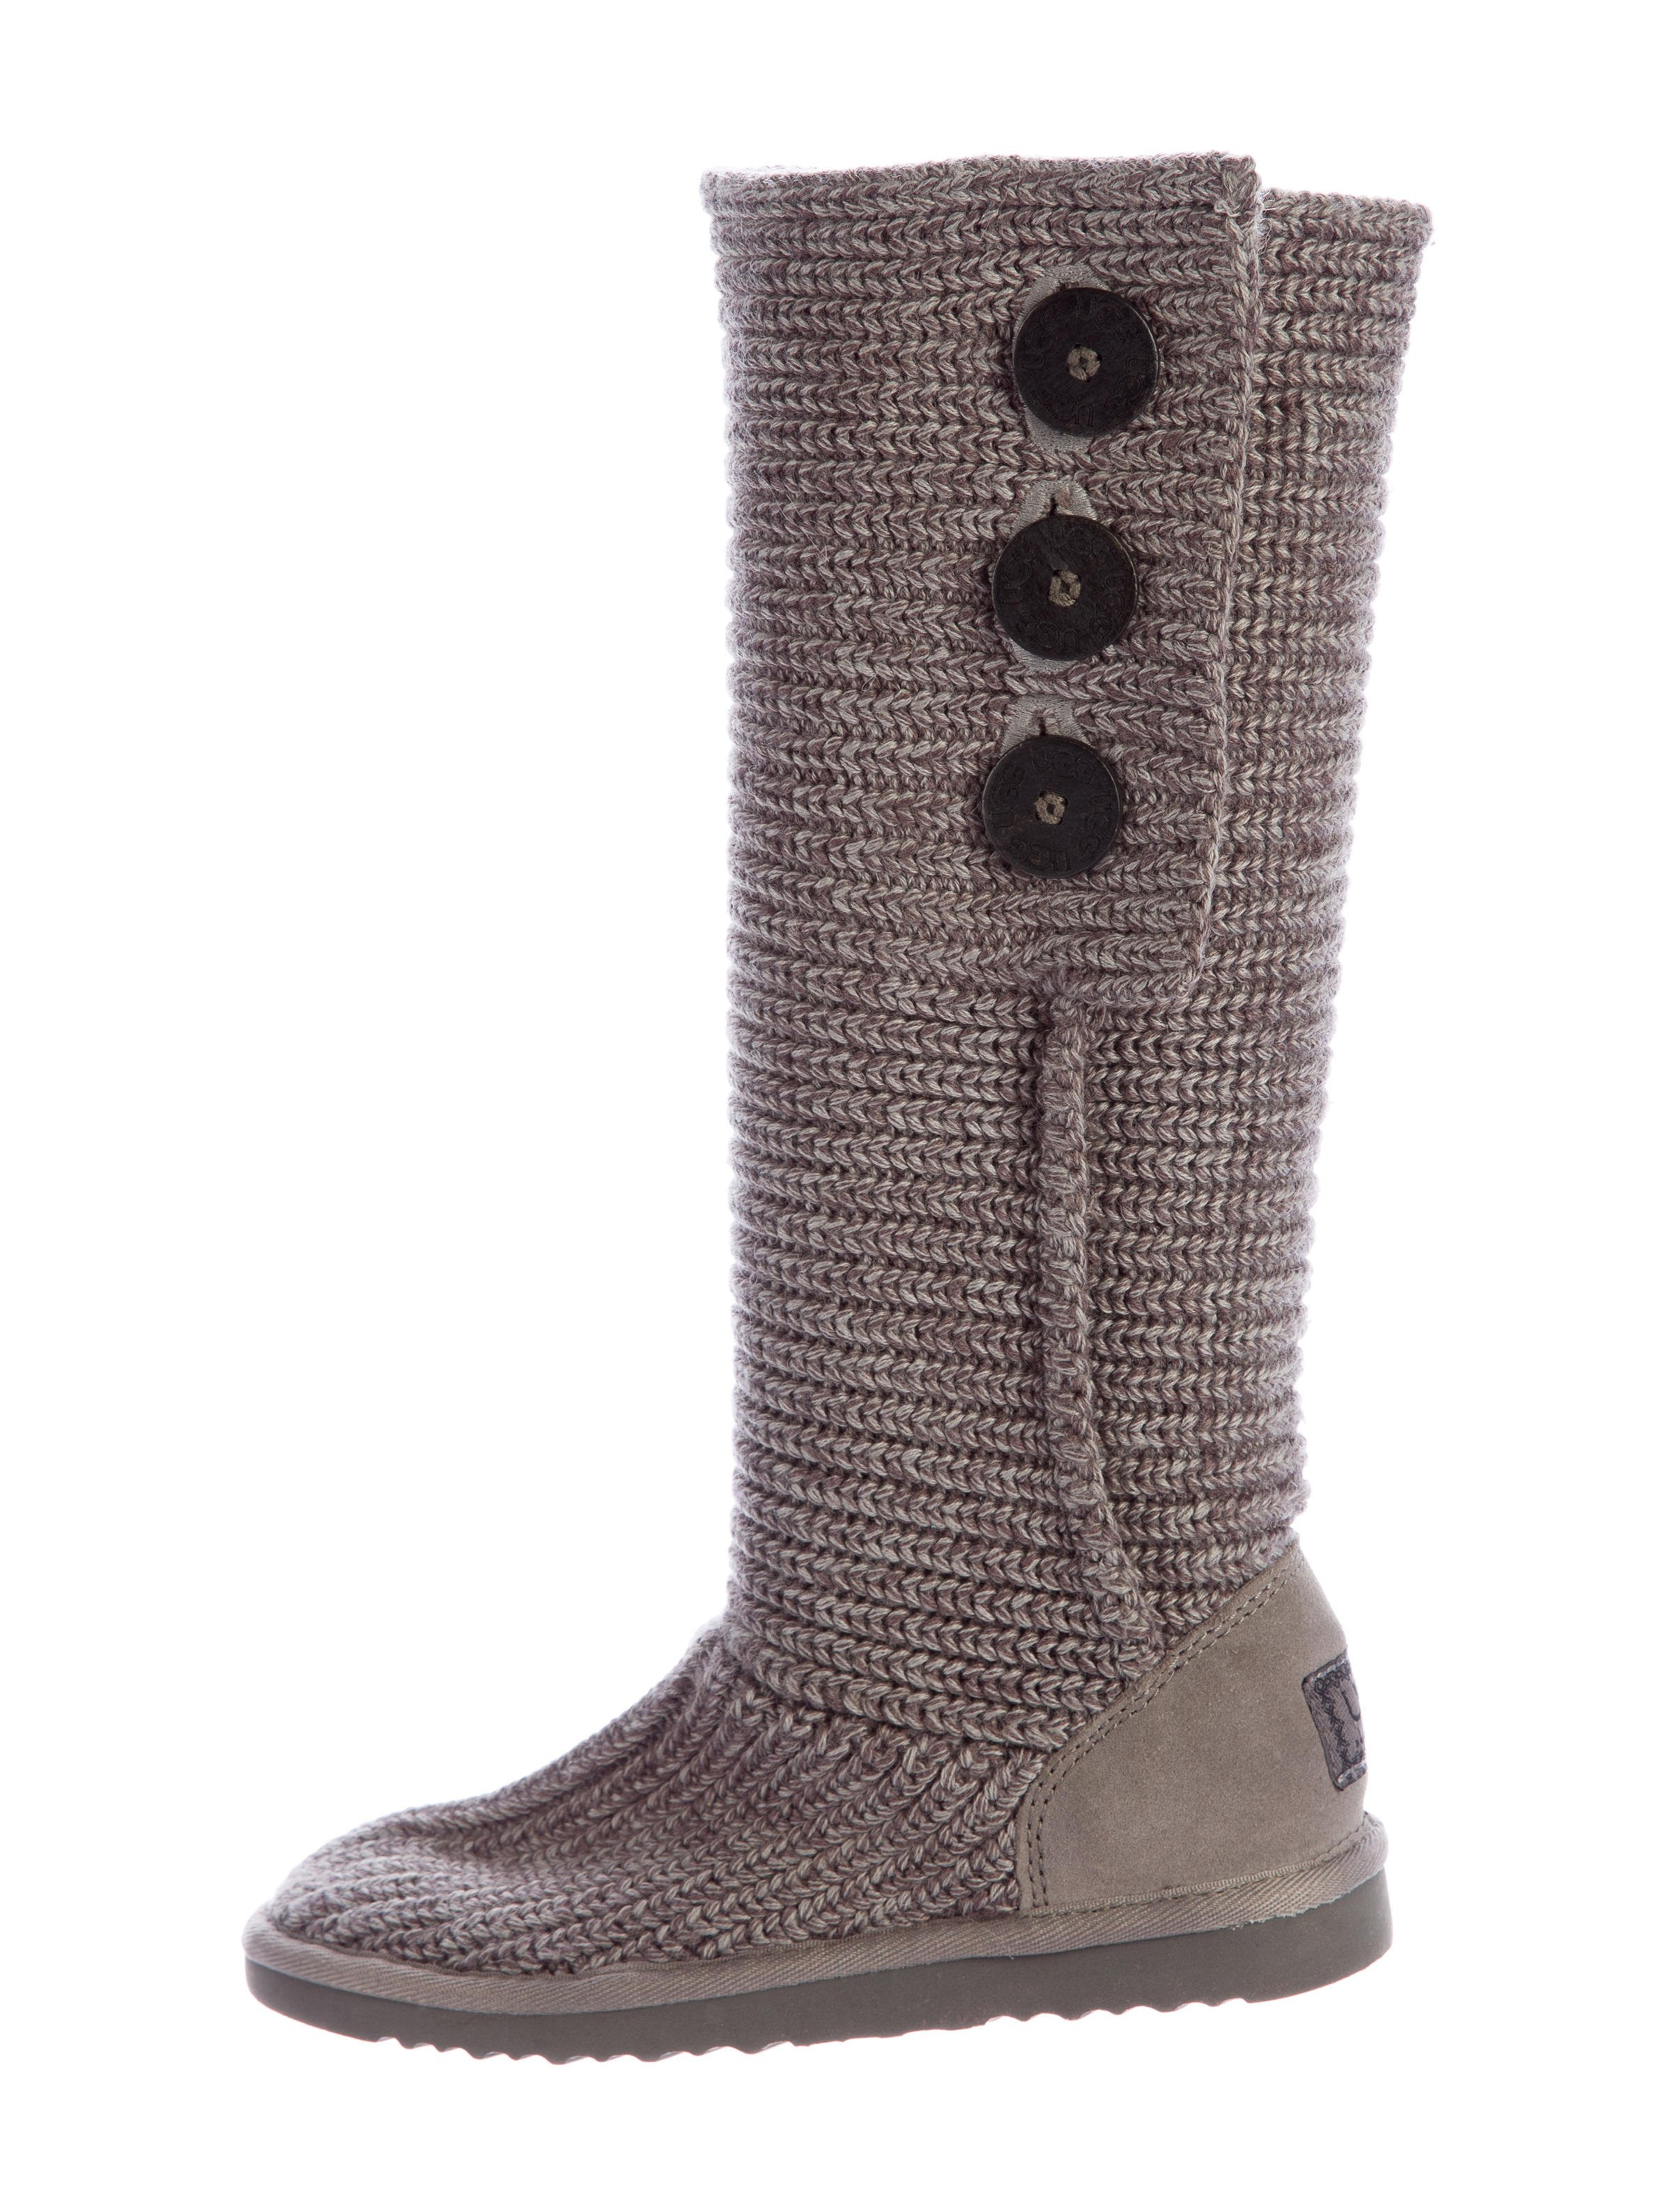 Knit Boots New Ugg Australia Knit Knee High Boots Shoes Wuugg Of Luxury 48 Photos Knit Boots